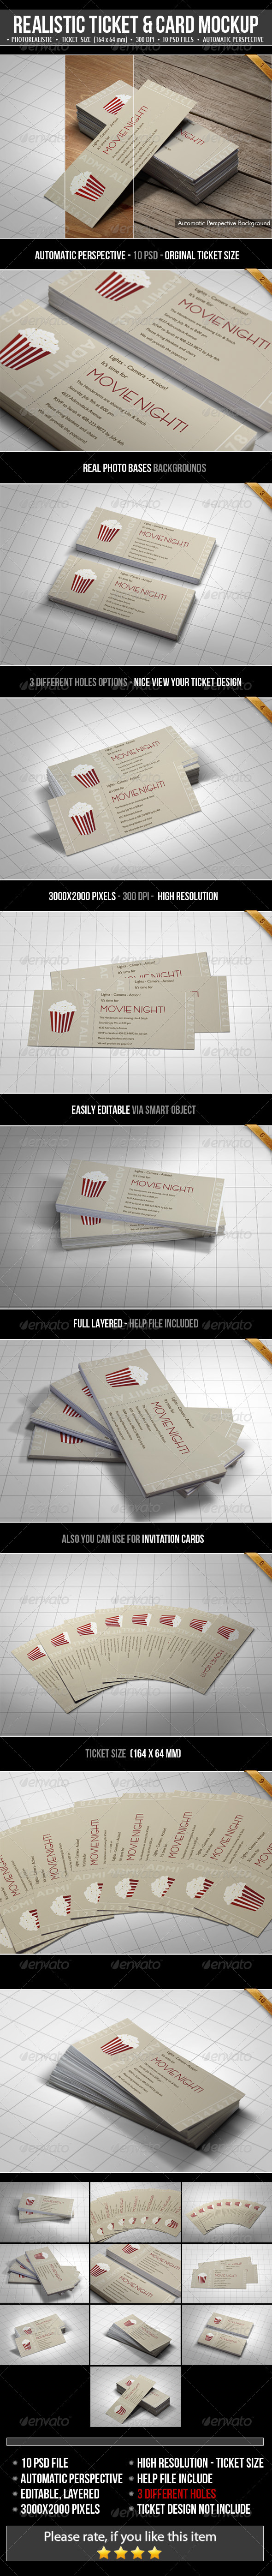 GraphicRiver Realistic Ticket & Card Mockup 6219400